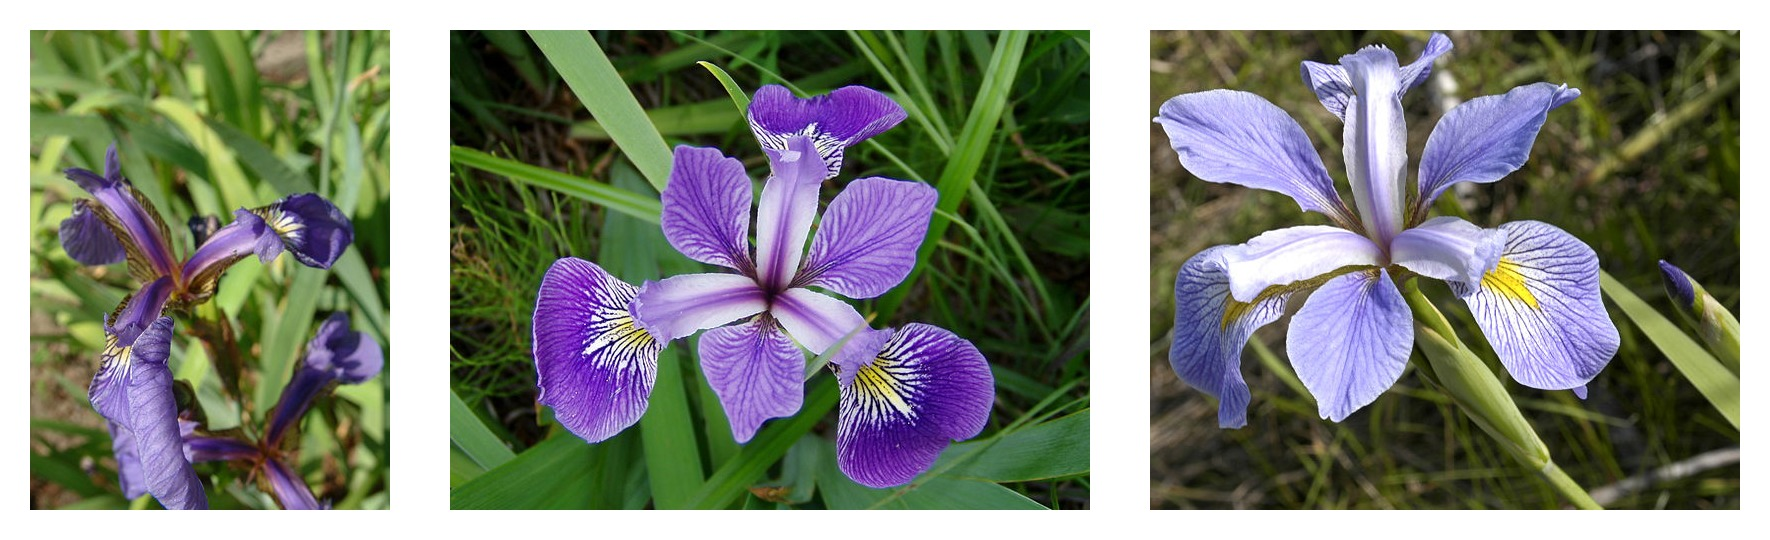 Petal geometry compared for three iris species: Iris setosa, Iris virginica, and Iris versicolor